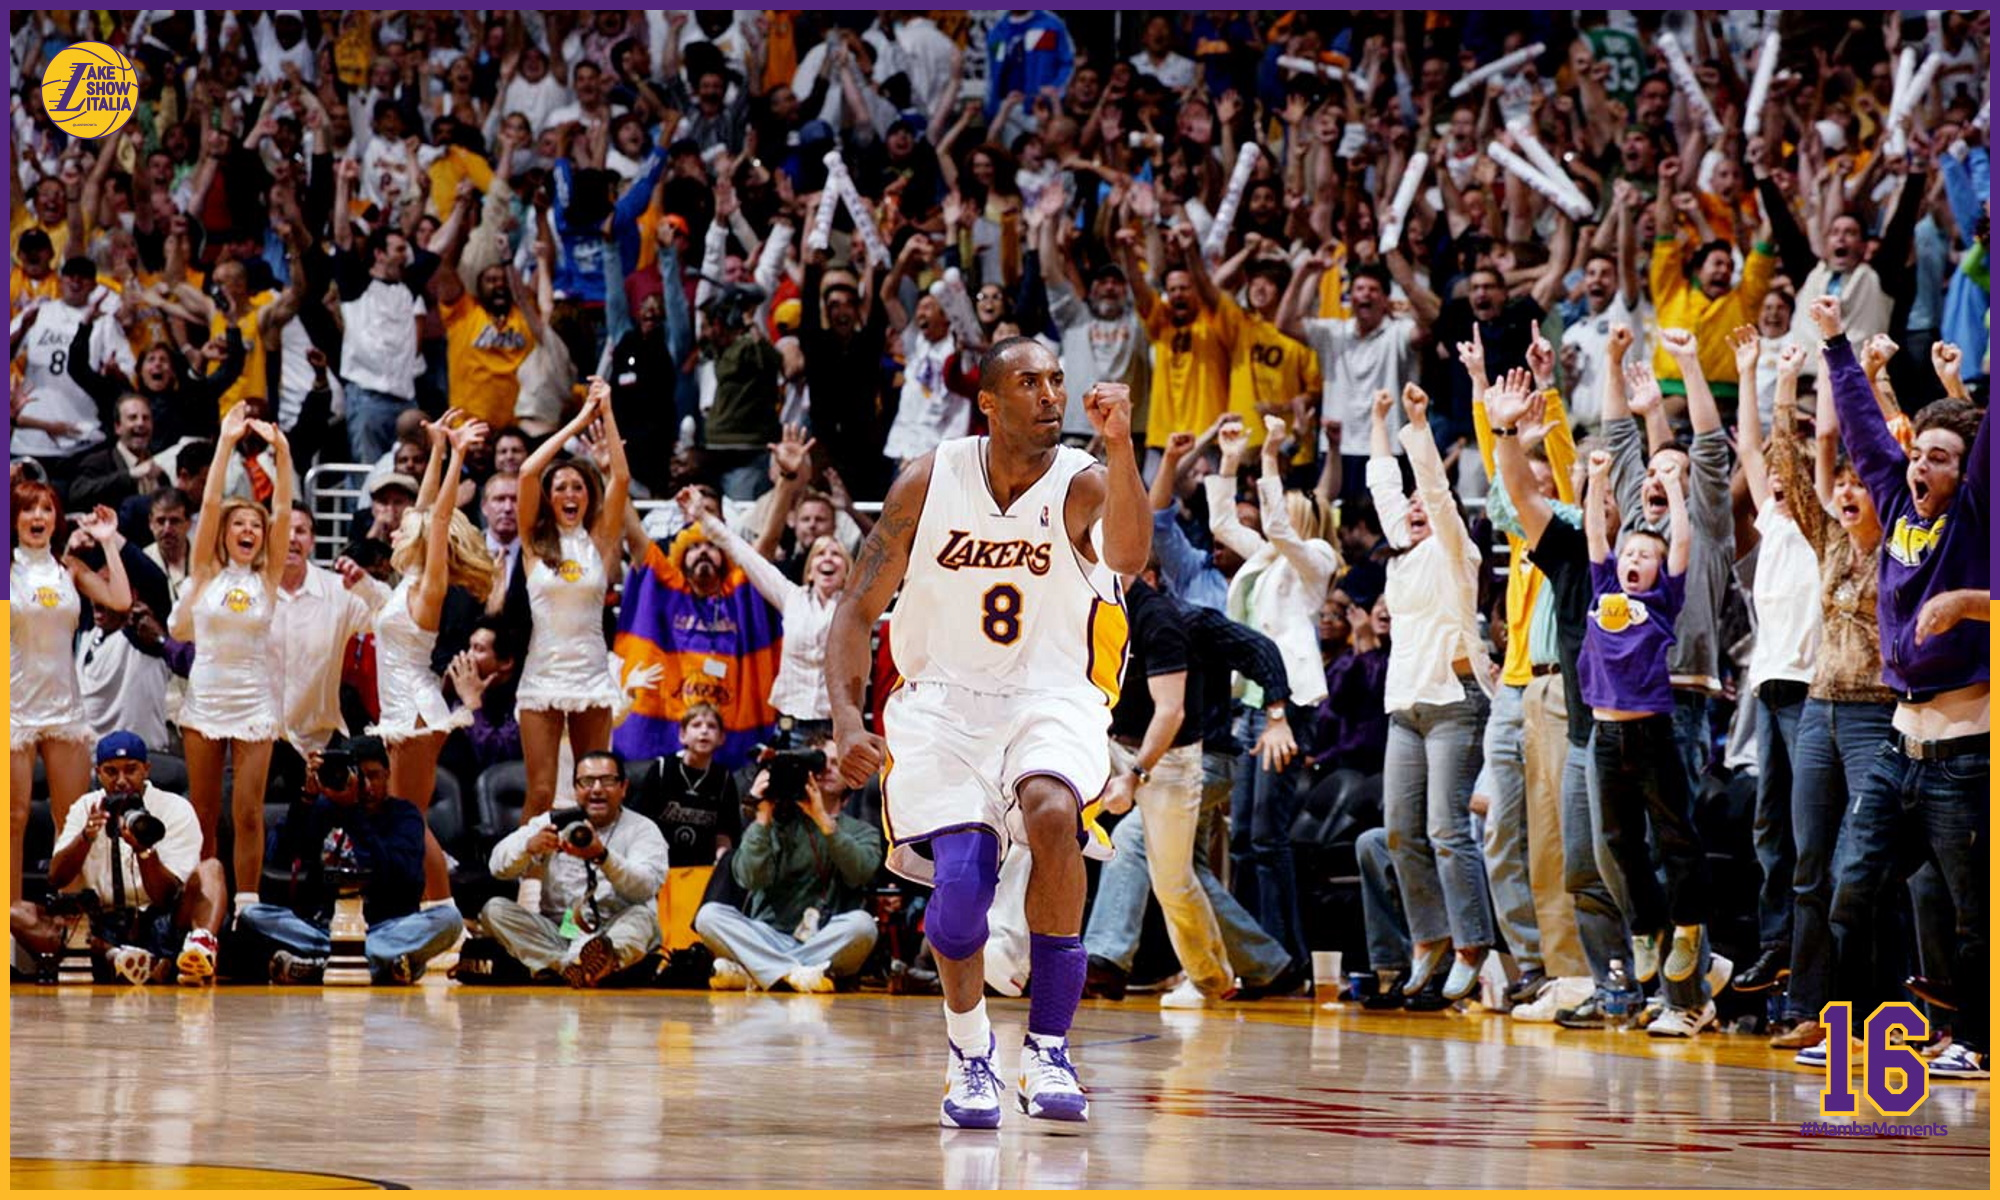 Kobe Bryant, Los Angeles Lakers vs Phoenix Suns at the STAPLES Center on April 30, 2006